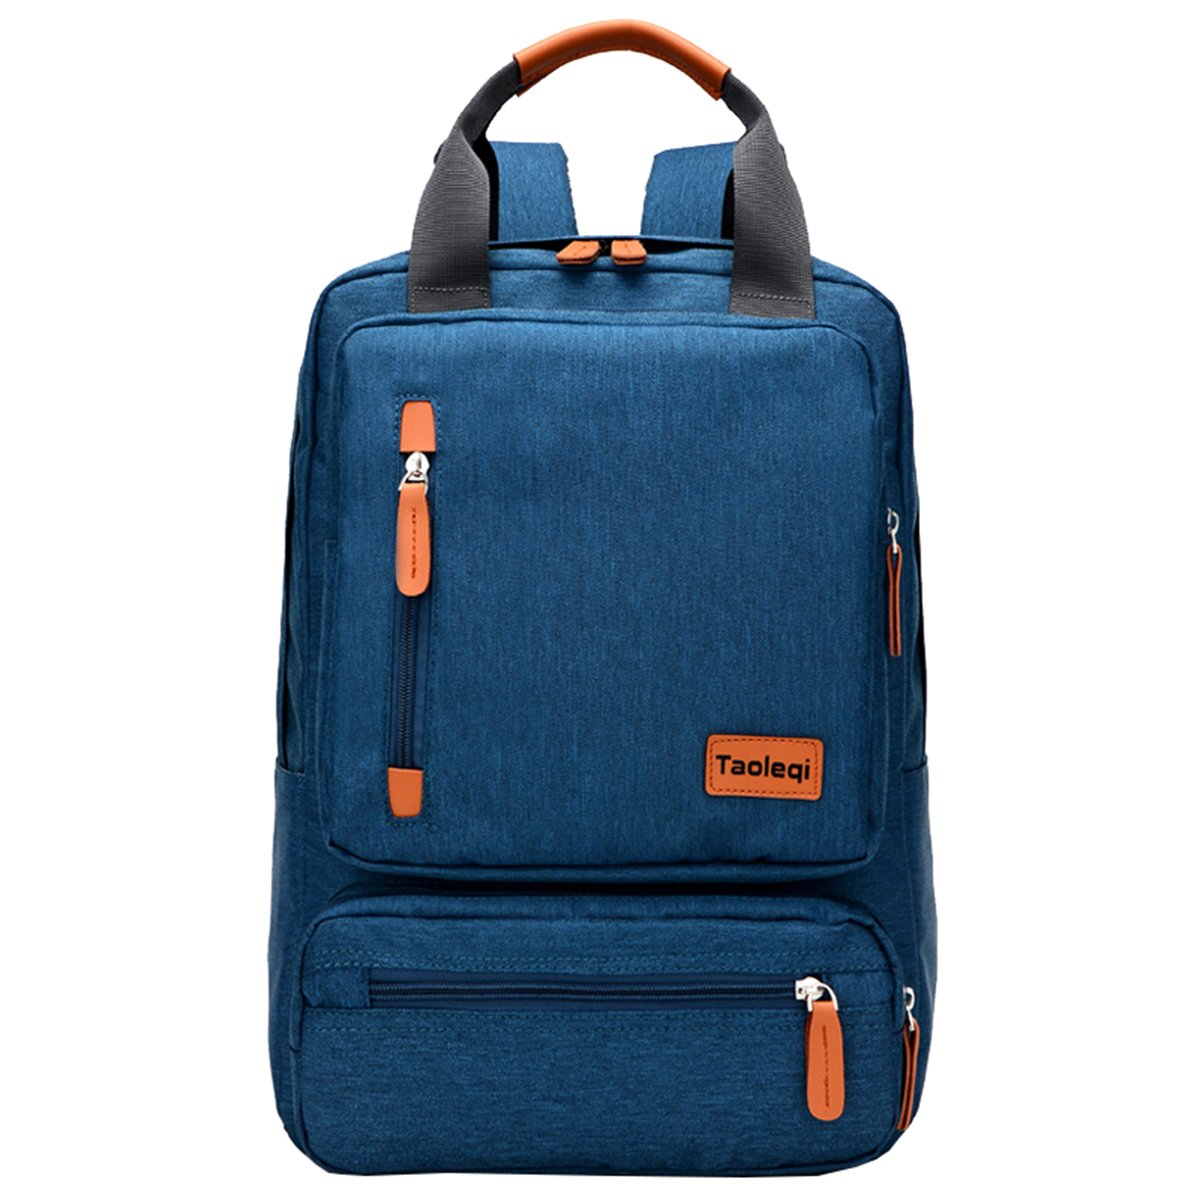 7beb36307a Super Modern Unisex Retro Canvas Laptop Backpack Multi-pocket Travel Backpack  Cool HandBag Book Bag